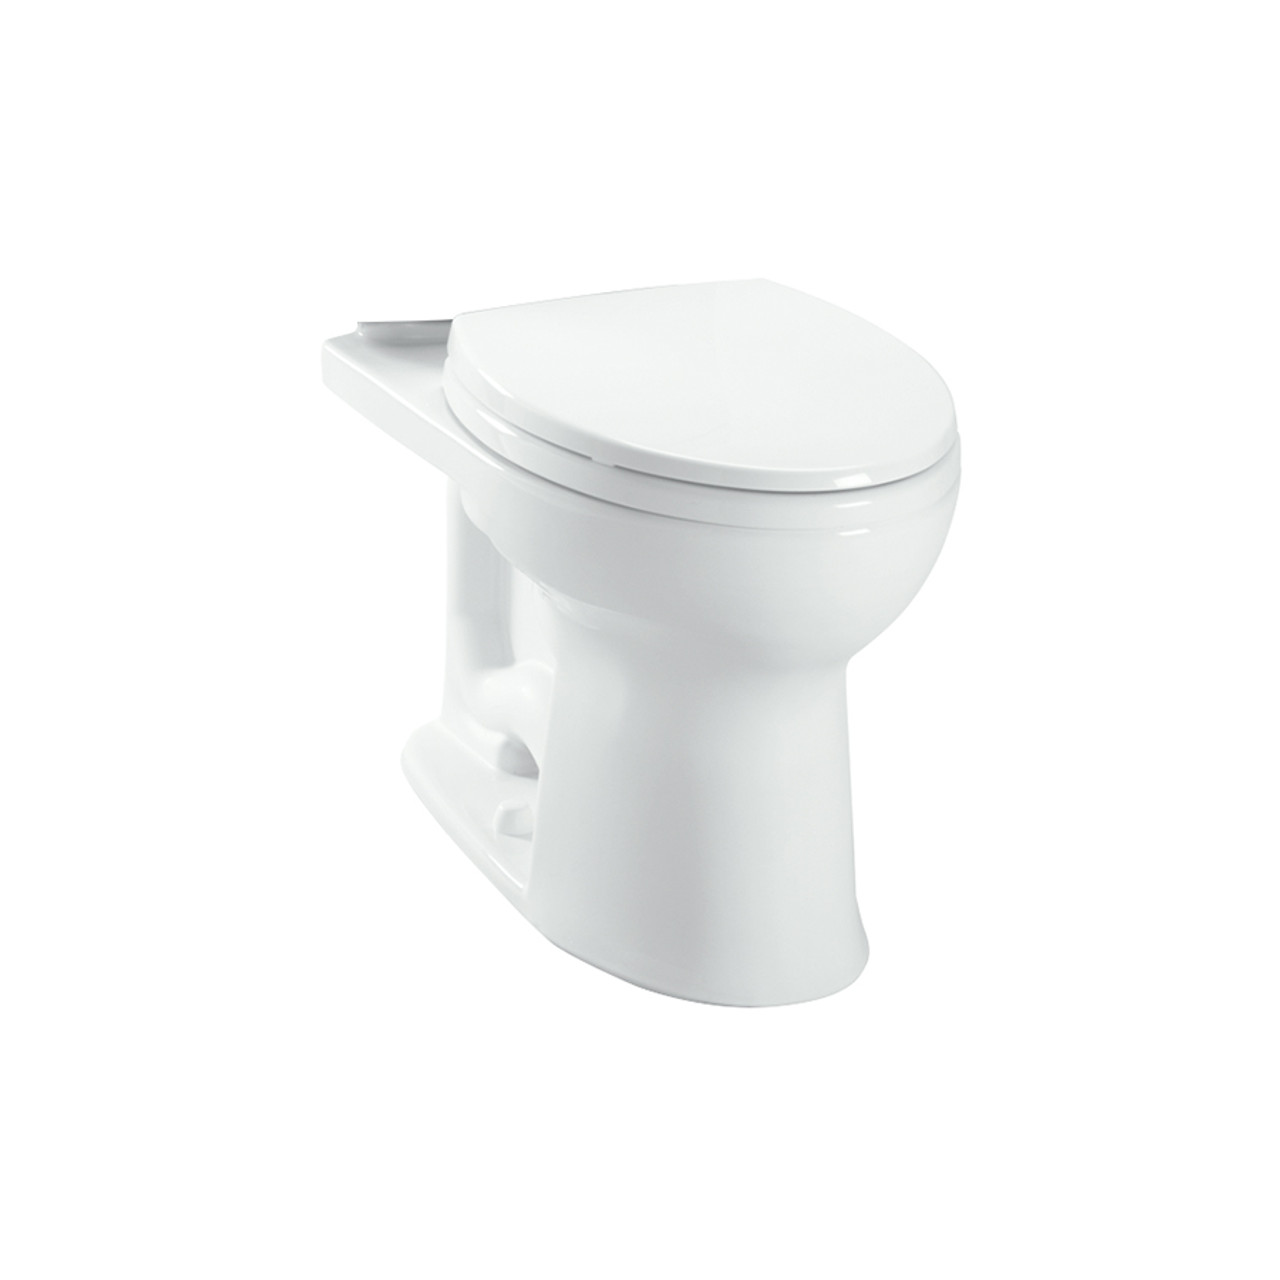 Sensational Toto C454Cufg01 Drake Ii Elongated Toilet Bowl Ocoug Best Dining Table And Chair Ideas Images Ocougorg